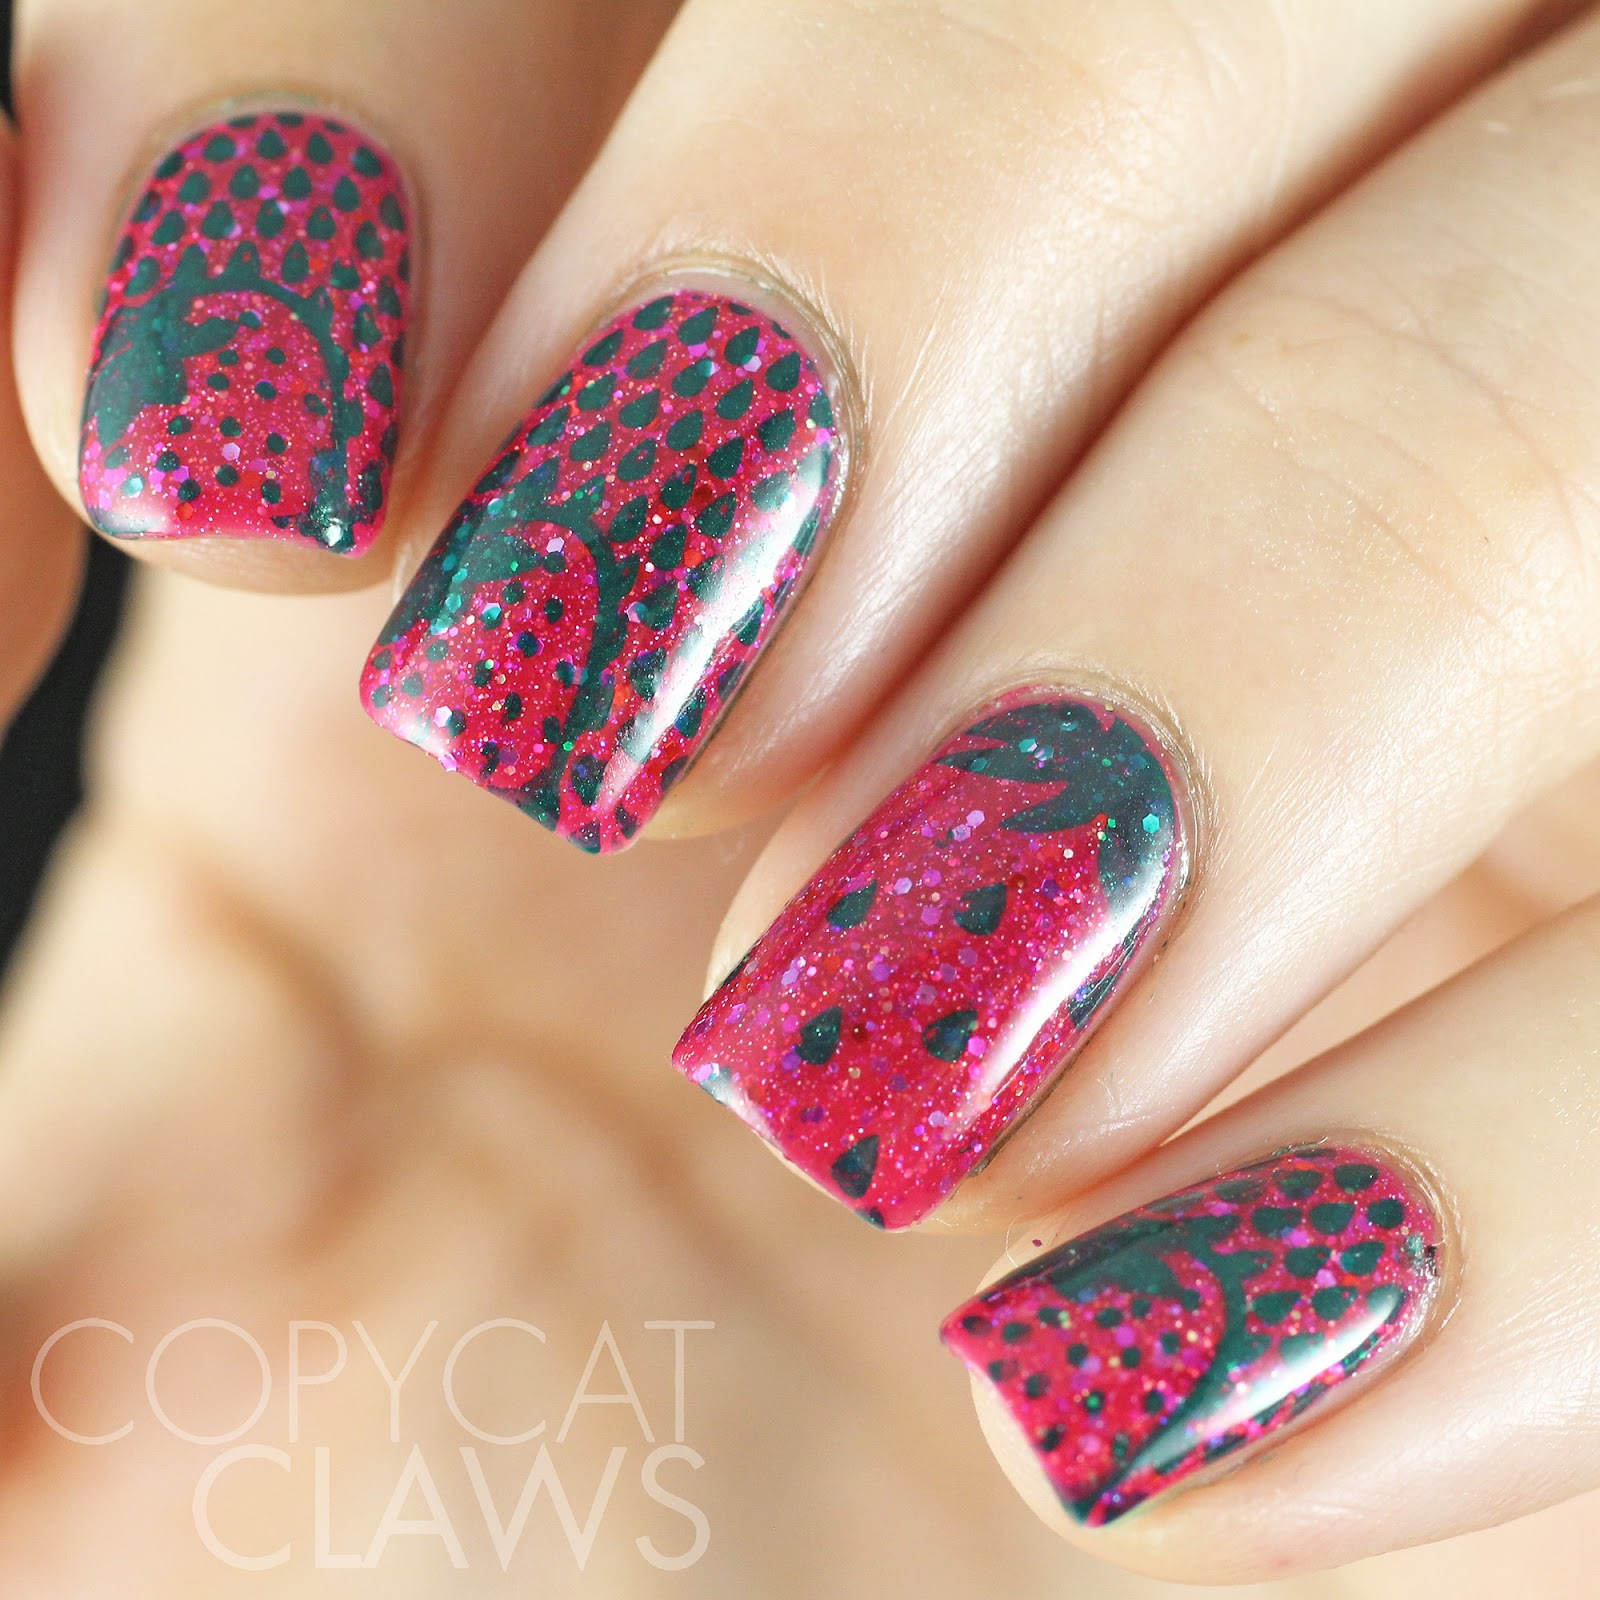 Copycat Claws: Sunday Stamping - Over Pink Glitter